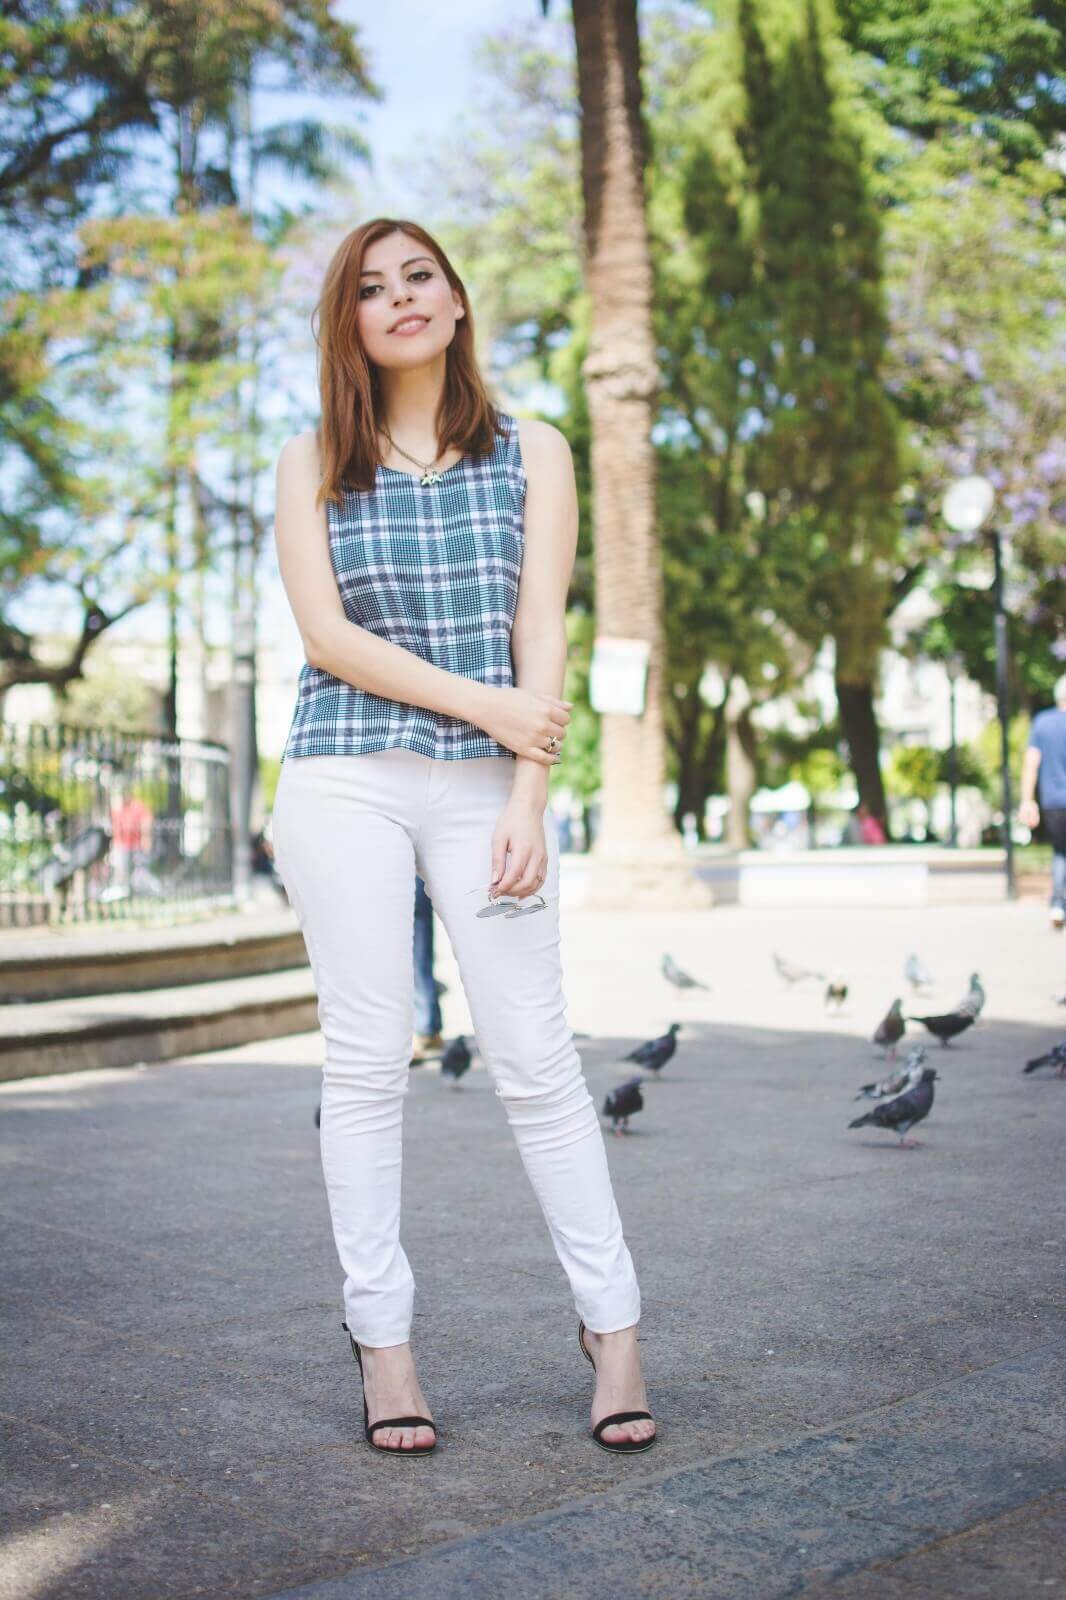 black-and-white-top-skinny-jeans-deborah-ferrero-style-by-deb-gamiss-sandals-streetstyle12